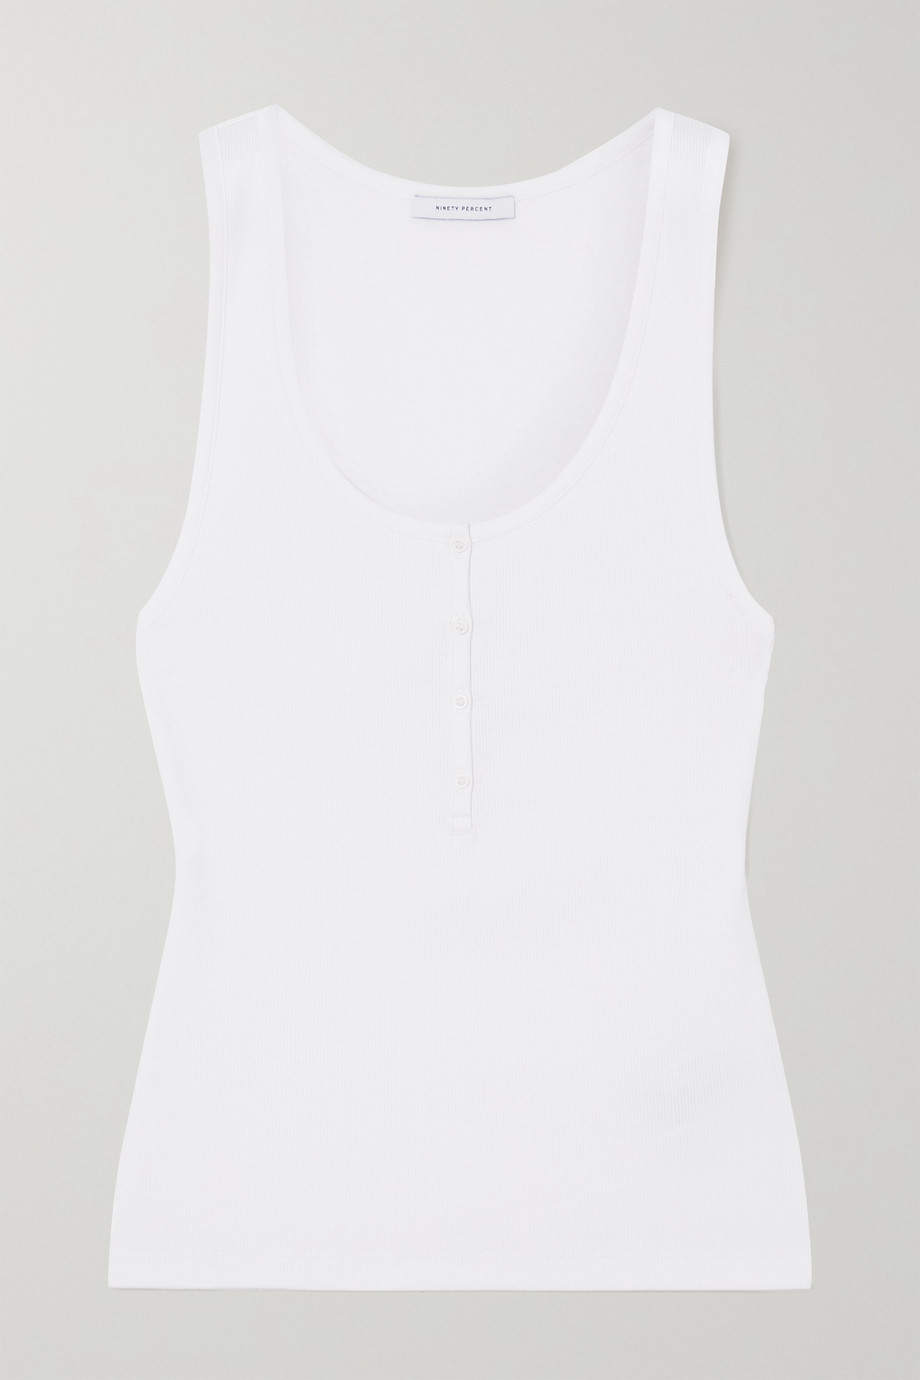 Ninety Percent + NET SUSTAIN ribbed stretch organic cotton tank